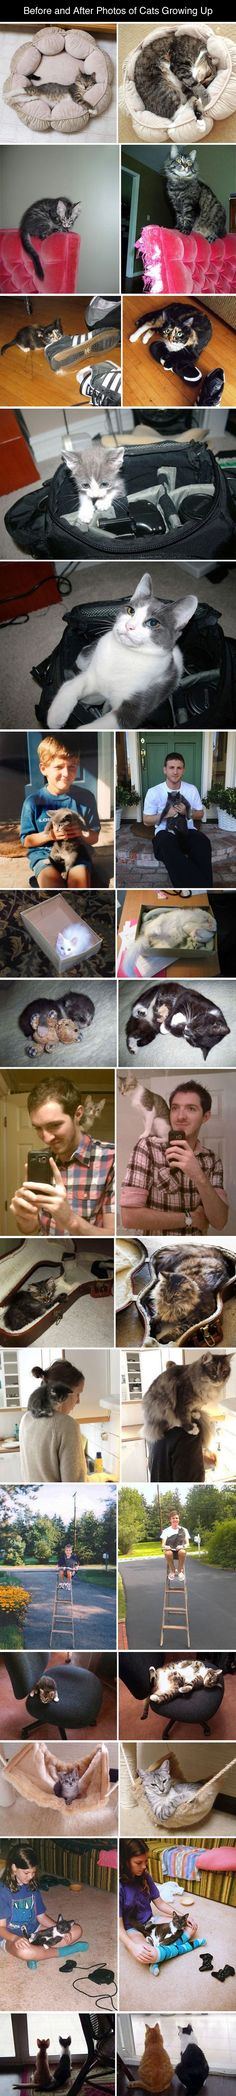 before and after photos of cats growing up